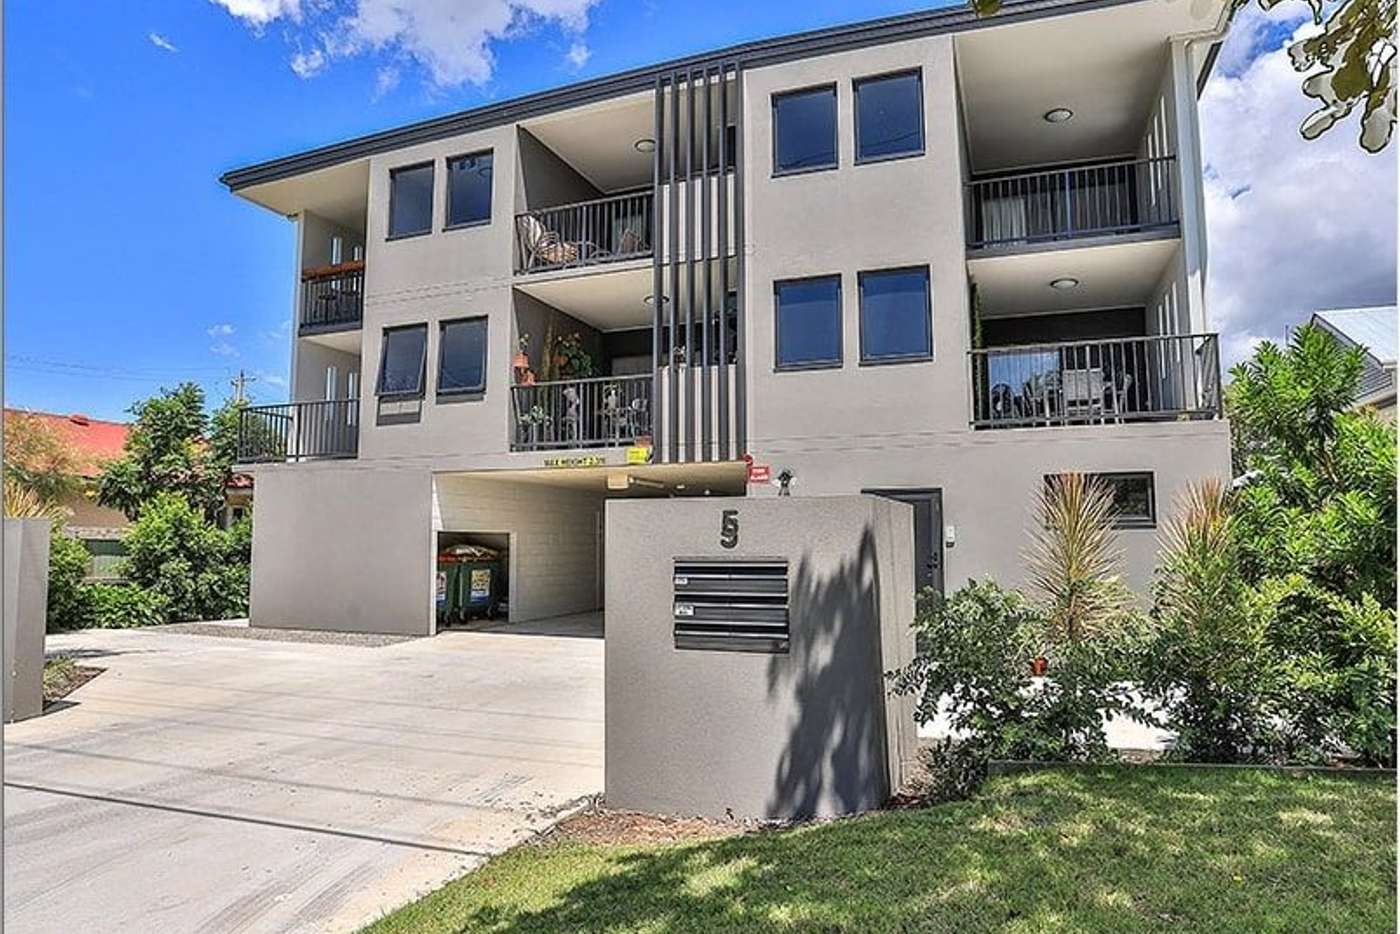 Main view of Homely apartment listing, 2/5 Hodgson Street, Zillmere QLD 4034